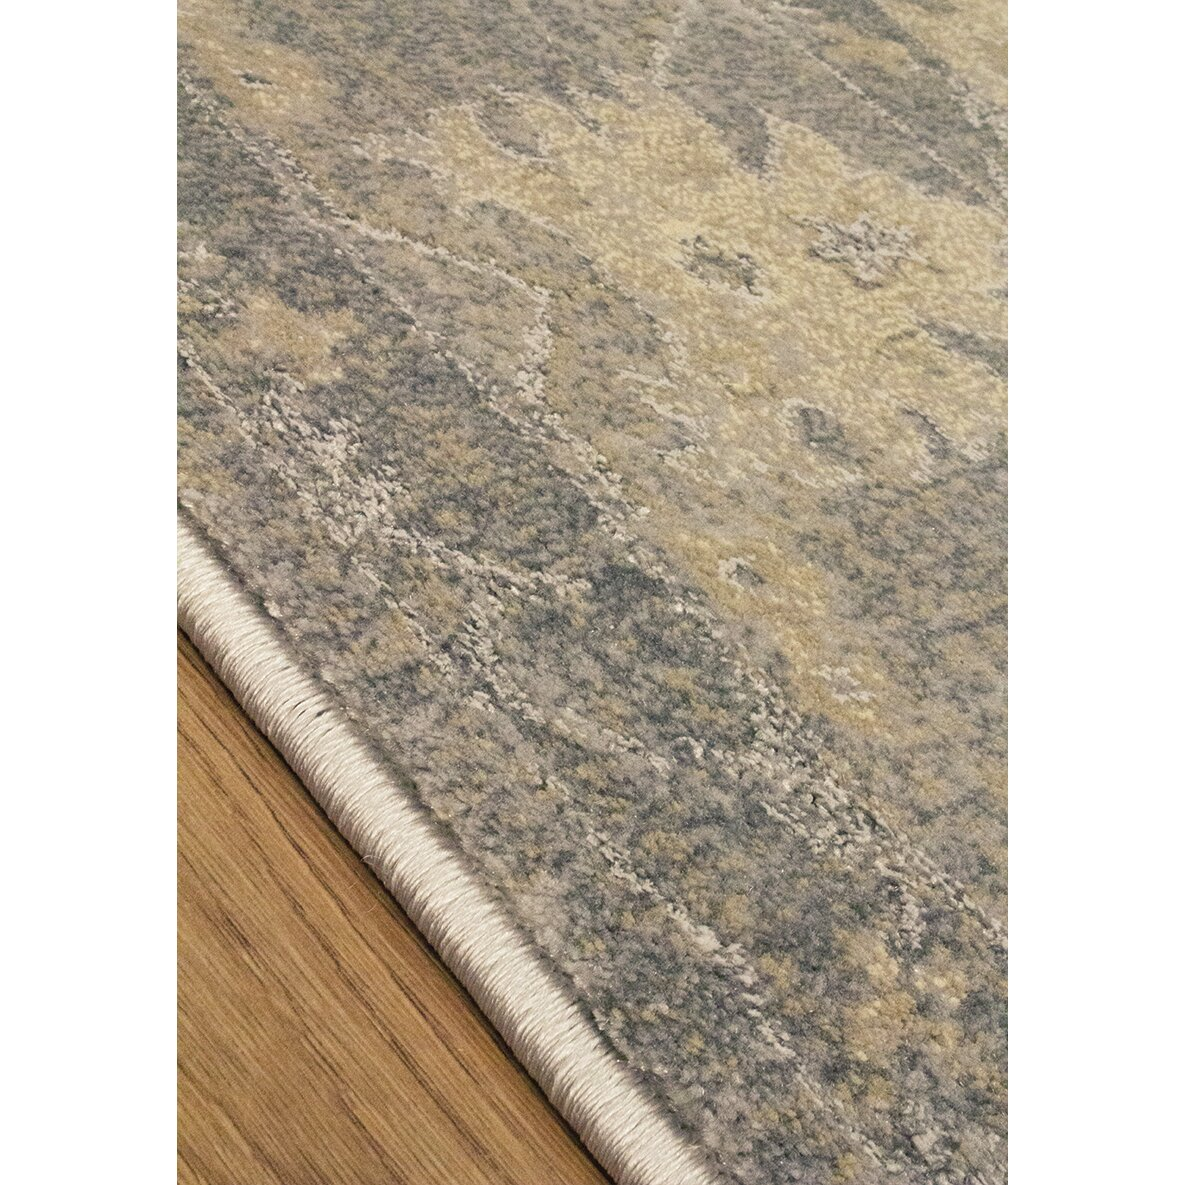 Kalora coventry gray beige area rug wayfair for Grey and tan rug